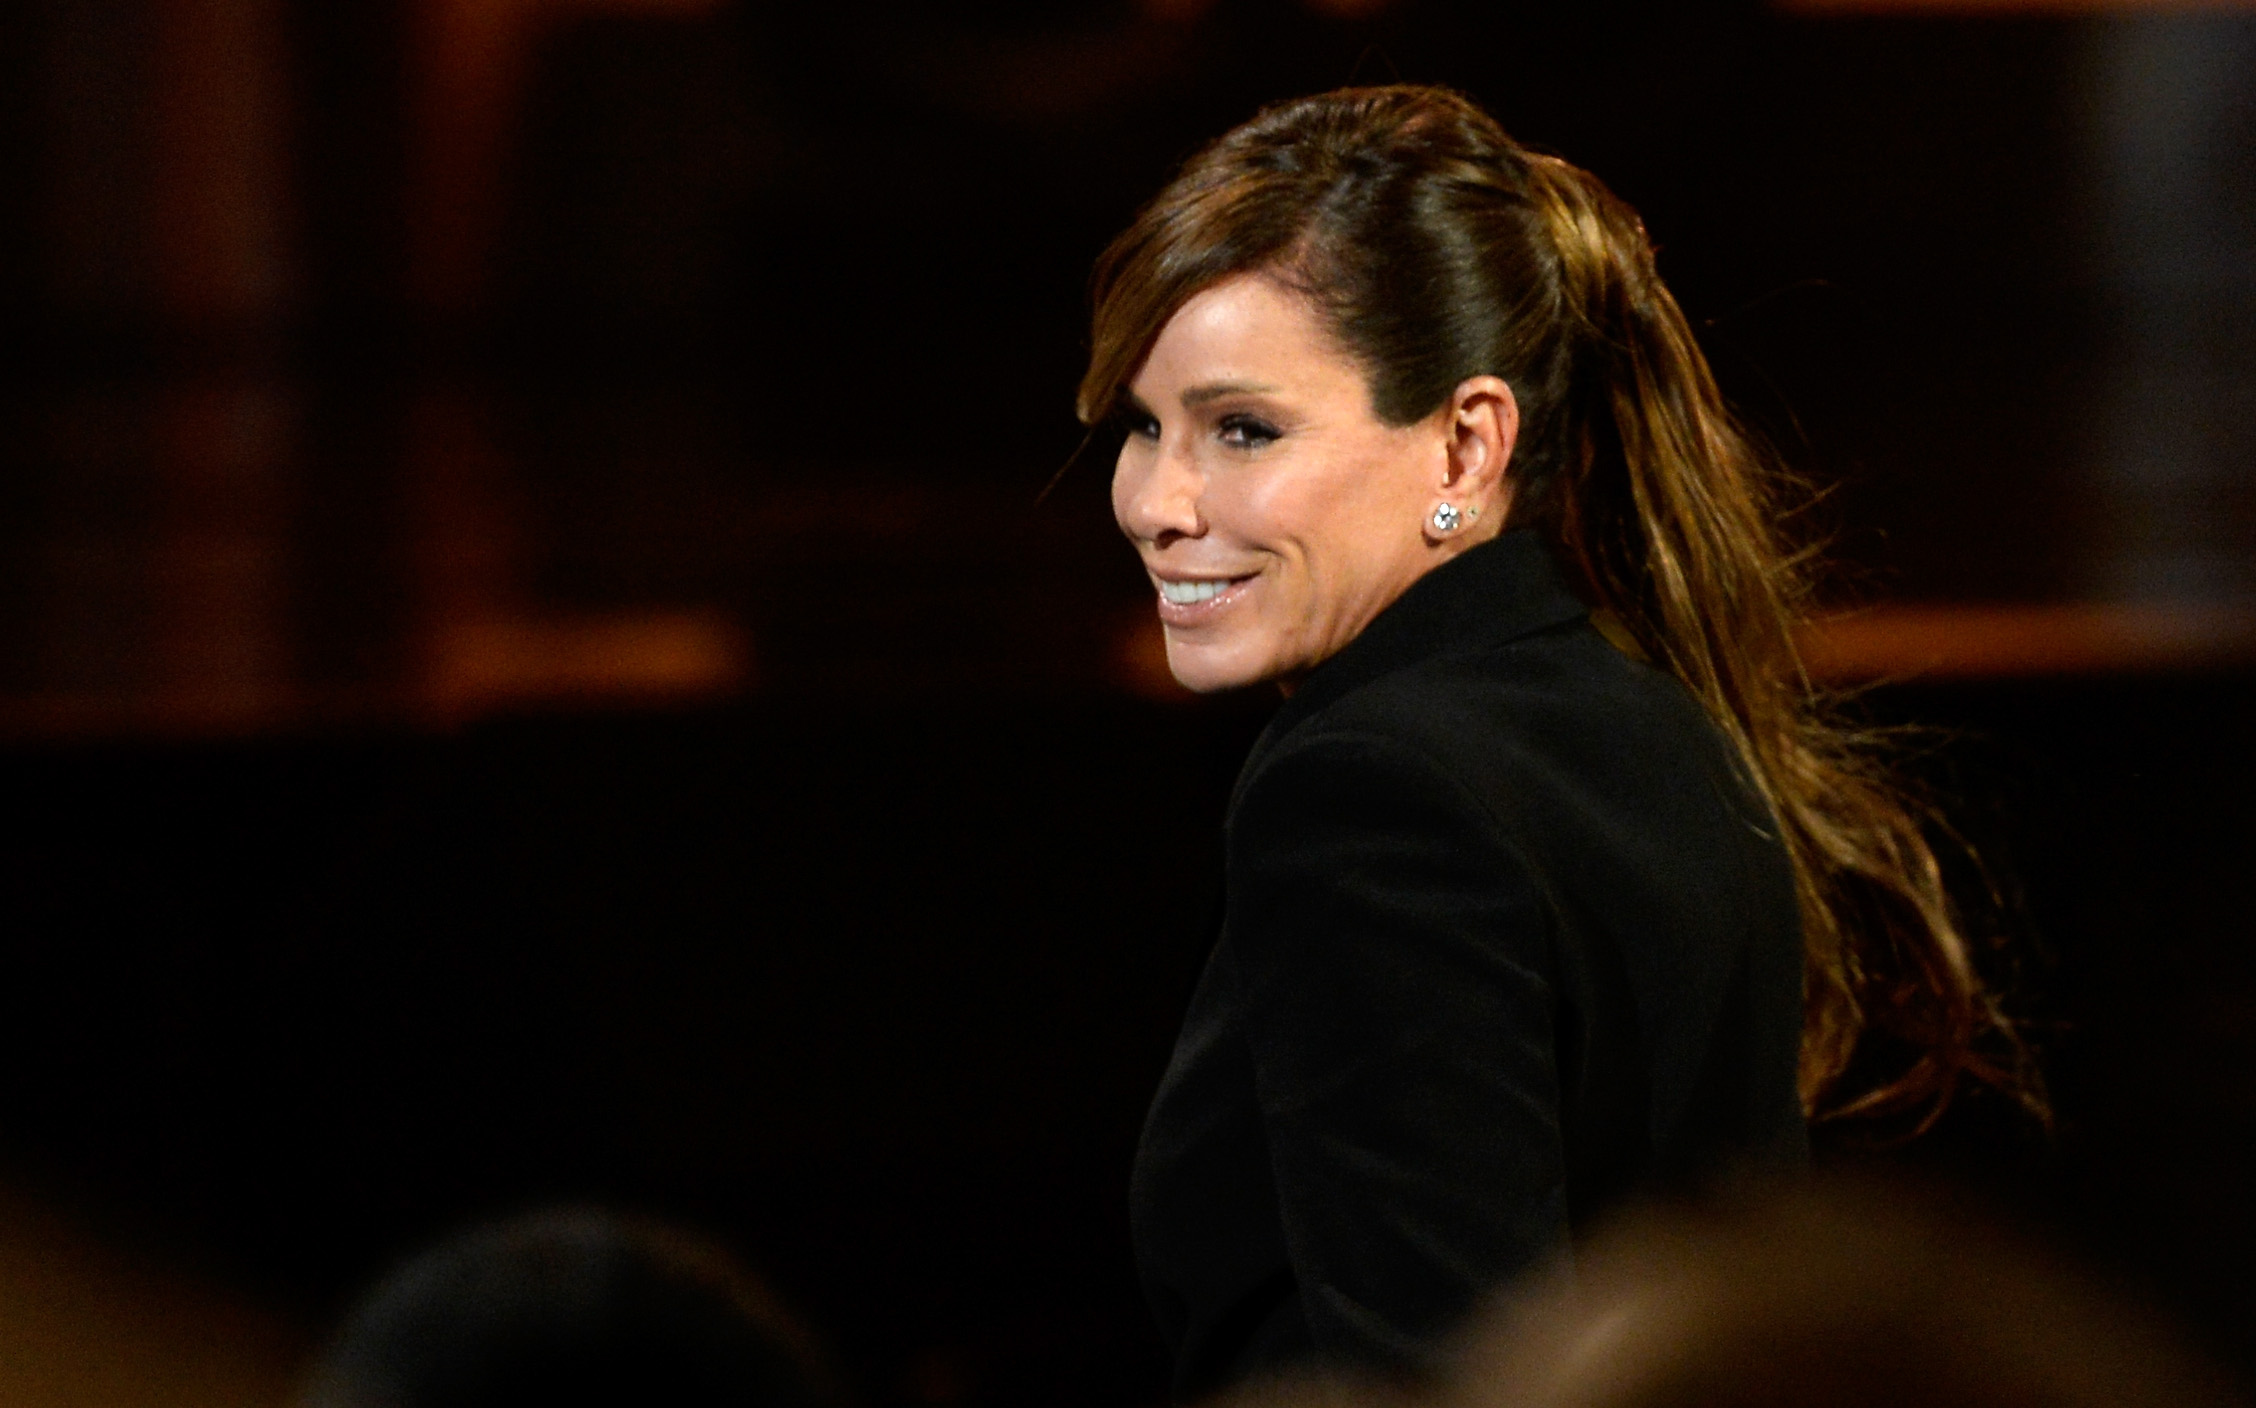 TV personality Melissa Rivers attends the The 57th Annual GRAMMY Awards Premiere Ceremony at Nokia Theatre L.A. Live on Feb. 8, 2015 in Los Angeles.